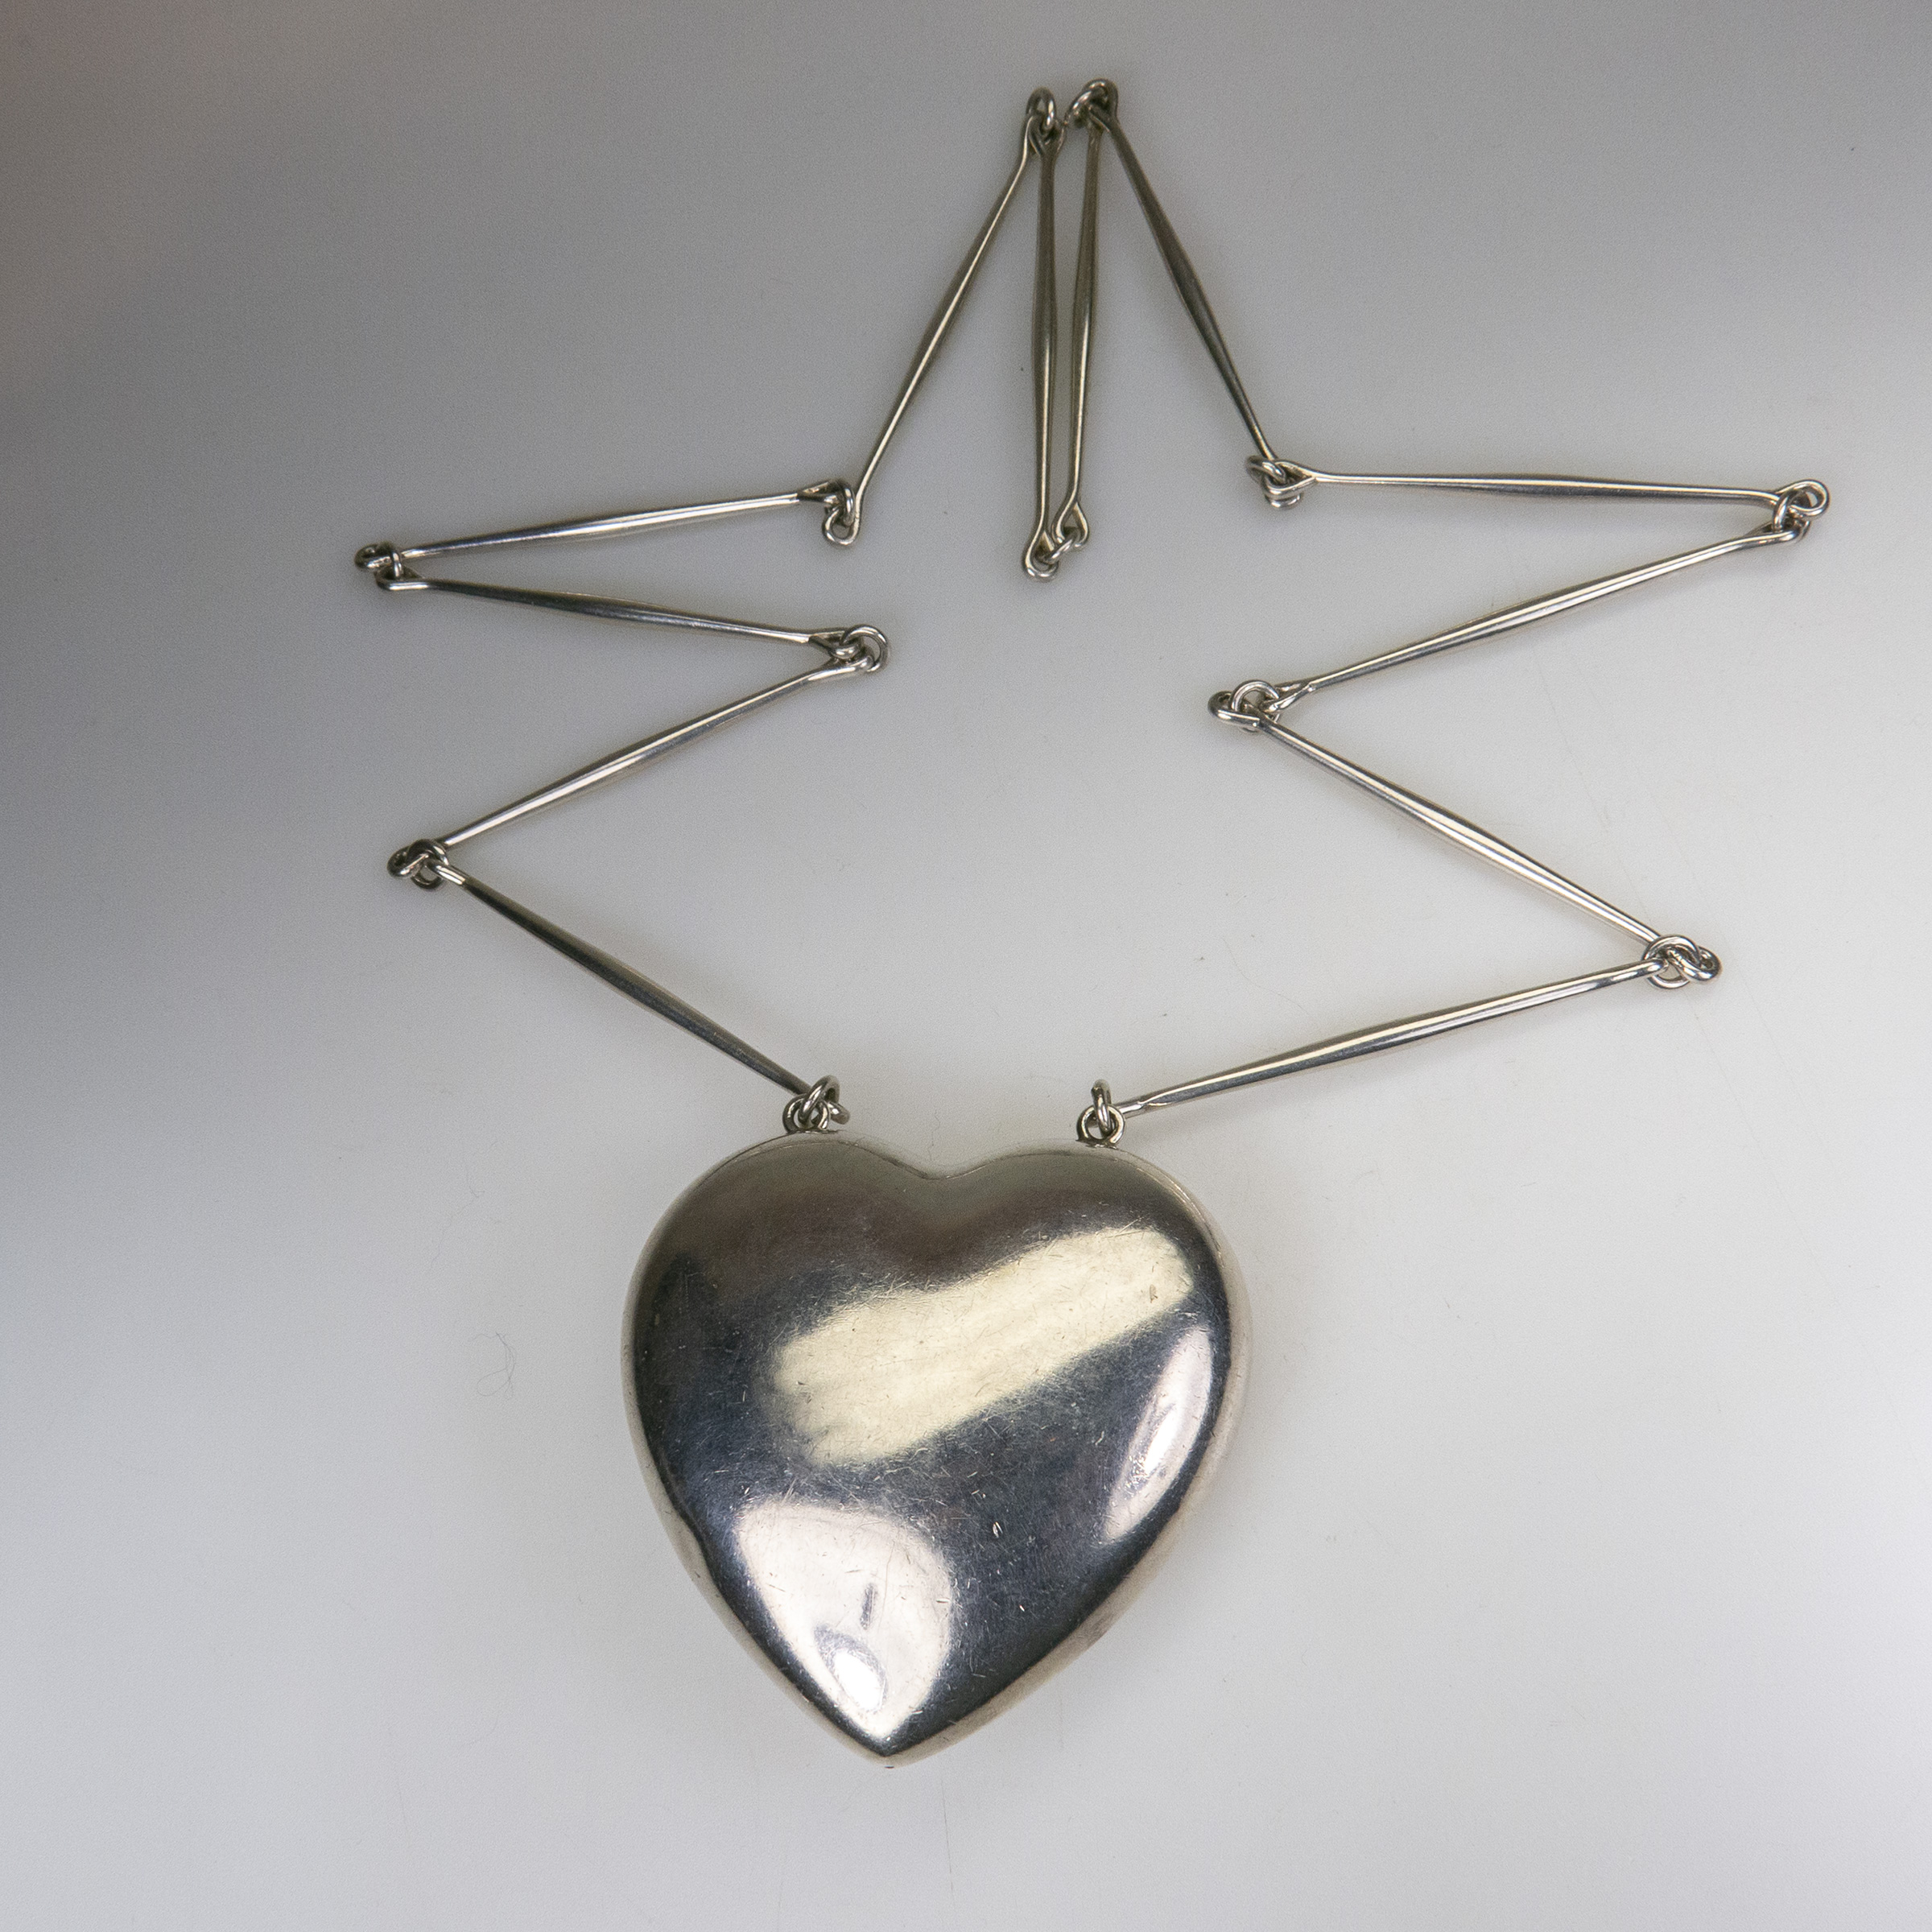 Georg Jensen Danish Sterling Silver Heart-Shaped Pendant